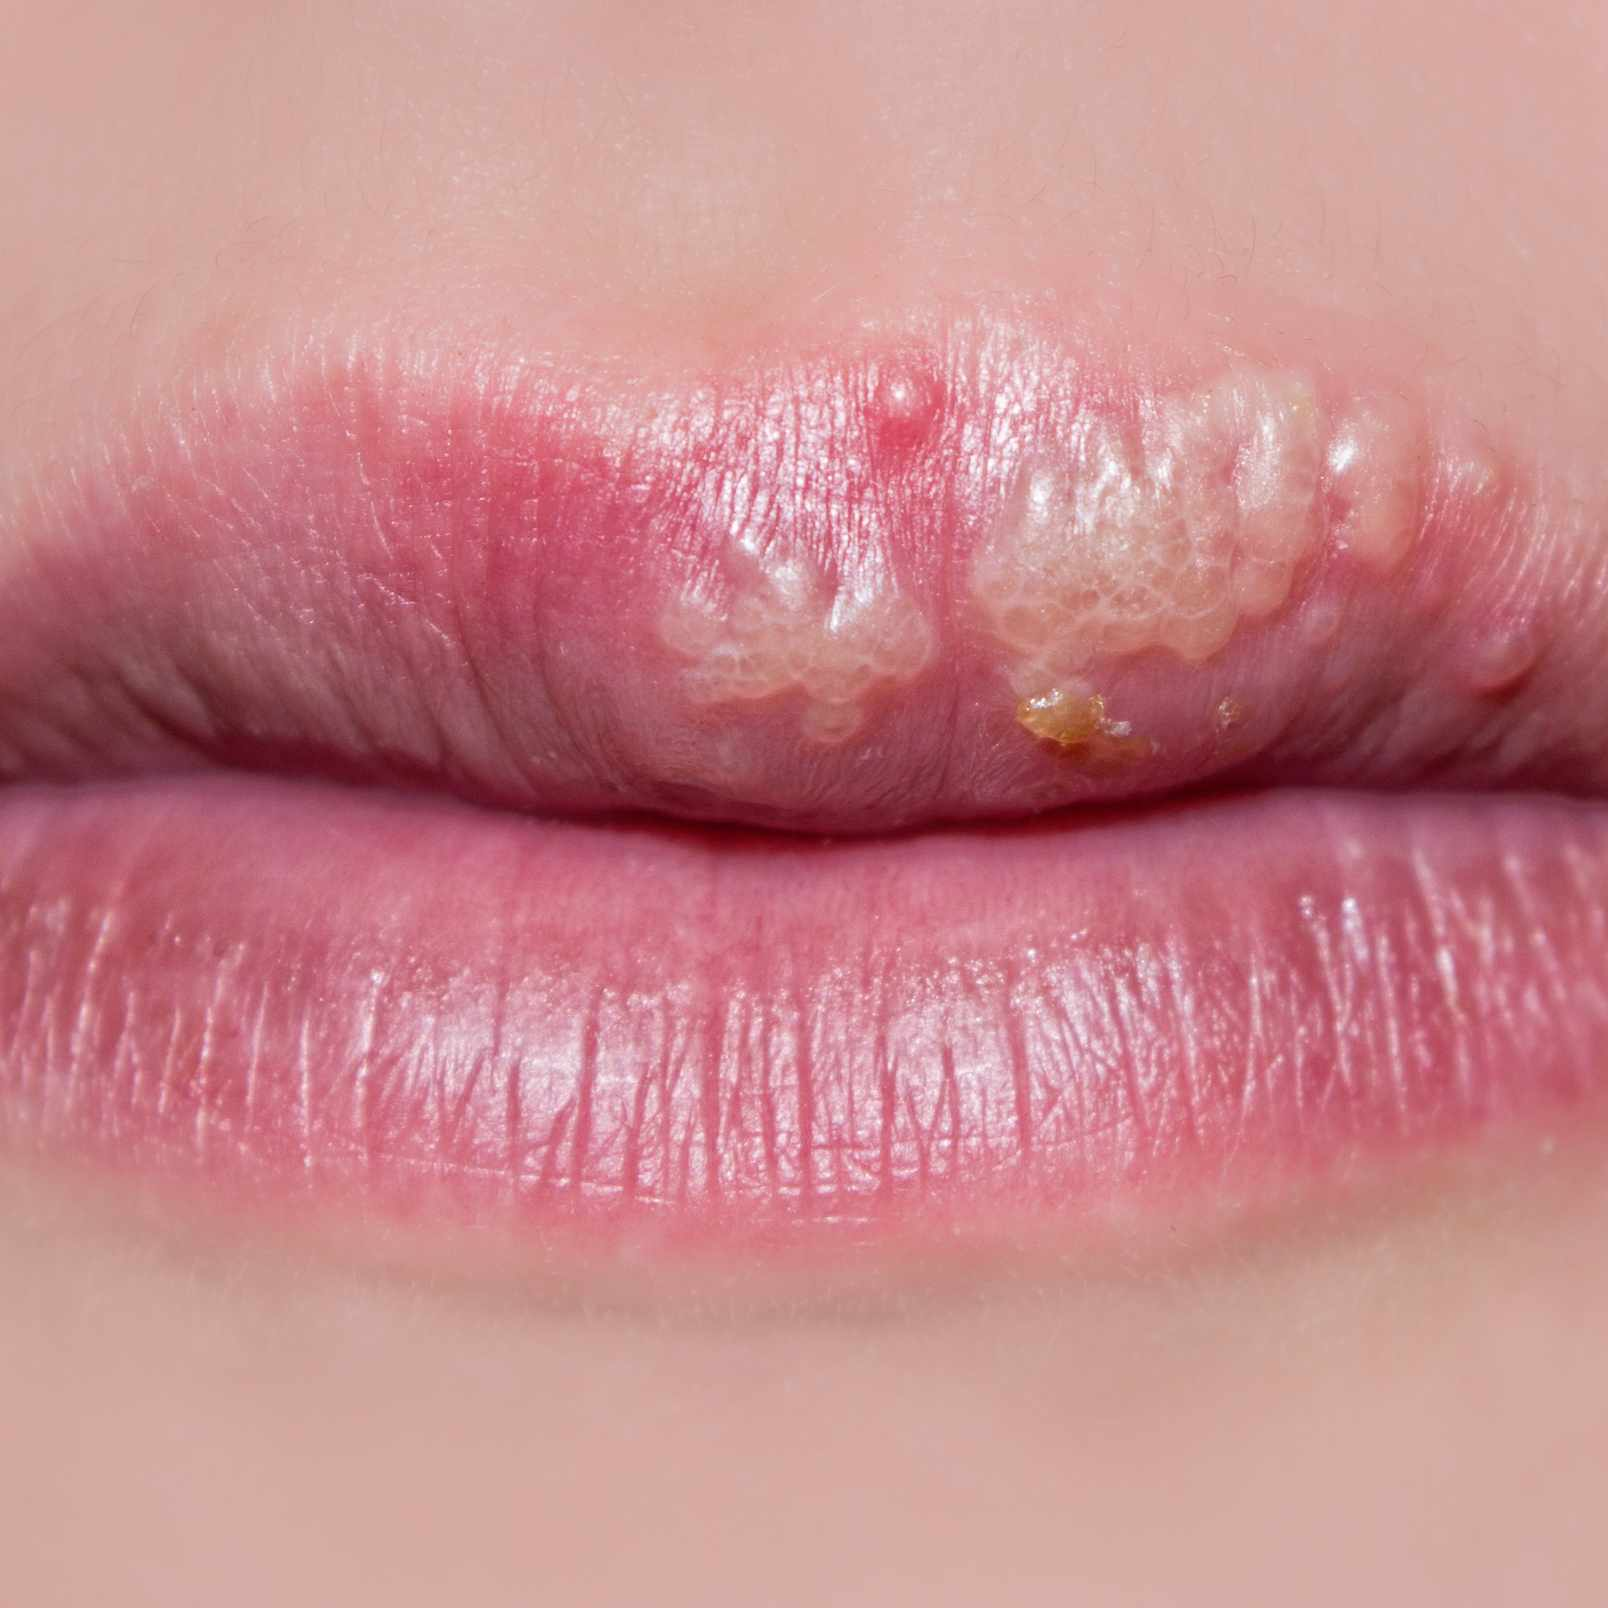 a close-up of a woman's lips, with cold sores